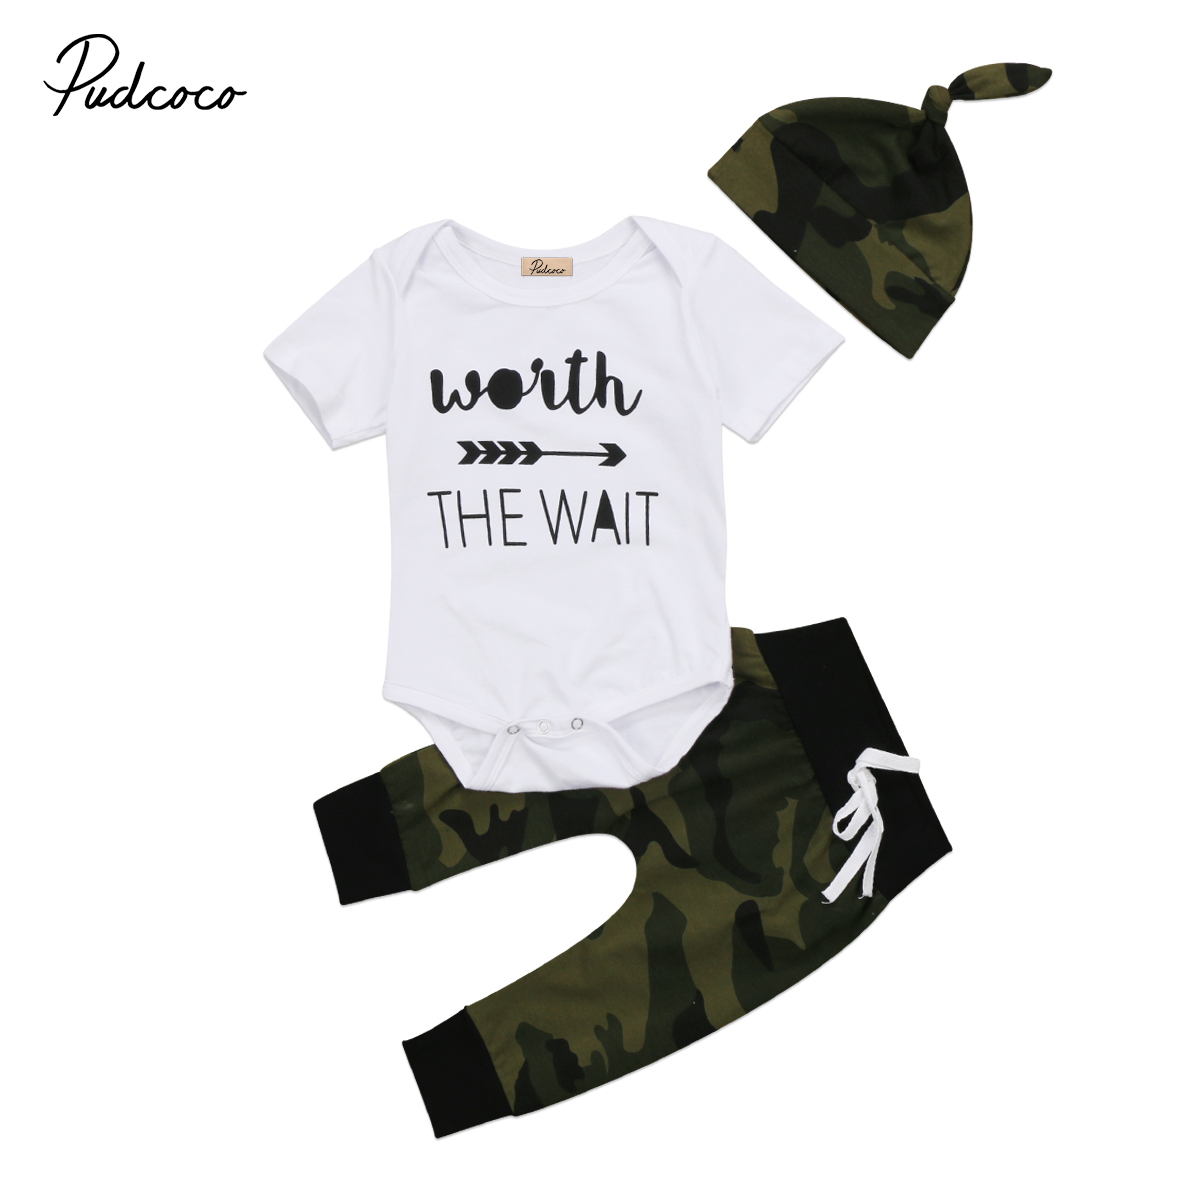 3Pcs Summer Newborn Baby Boy Casual Outfits Short Sleeve O-neck Tops Cotton   Romper  +Camouflage Pants Hat Set 3PCS